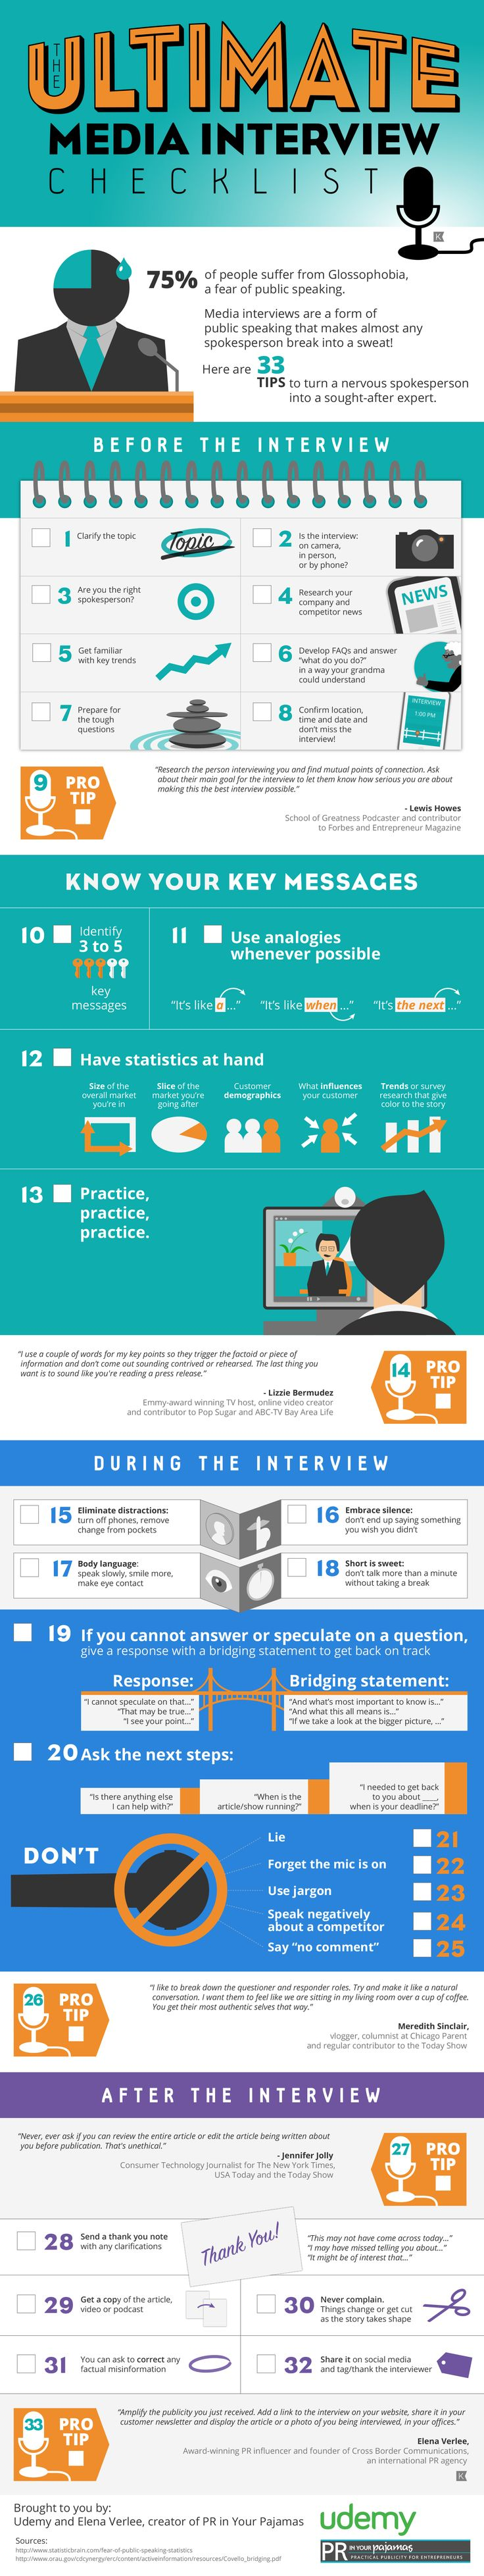 The Ultimate Media Interview Checklist (Infographic placed in Entrepreneur, Huffington Post, and other leading PR media outlets)